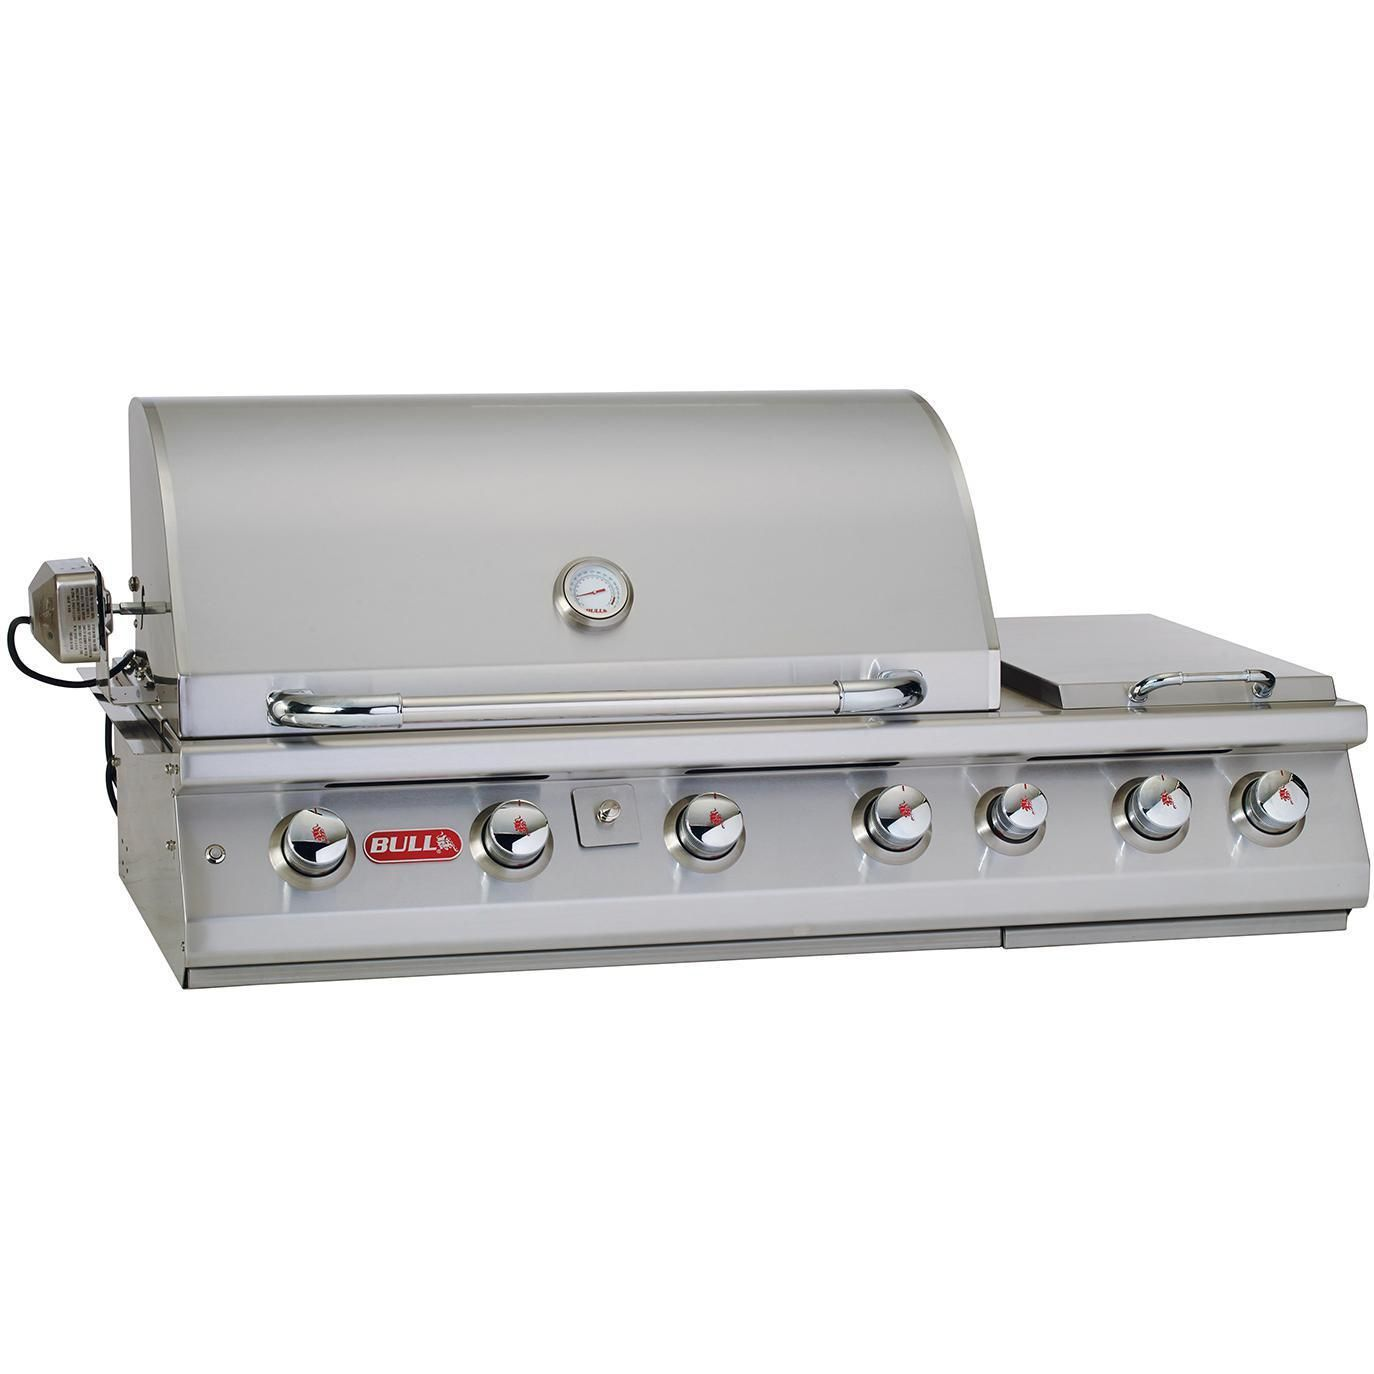 Bull Premium 47 Inch 7 Burner Built In Natural Gas Grill With Rotisserie Double Side Burner 18249 Bbqguys Natural Gas Grill Gas Bbq Outdoor Appliances